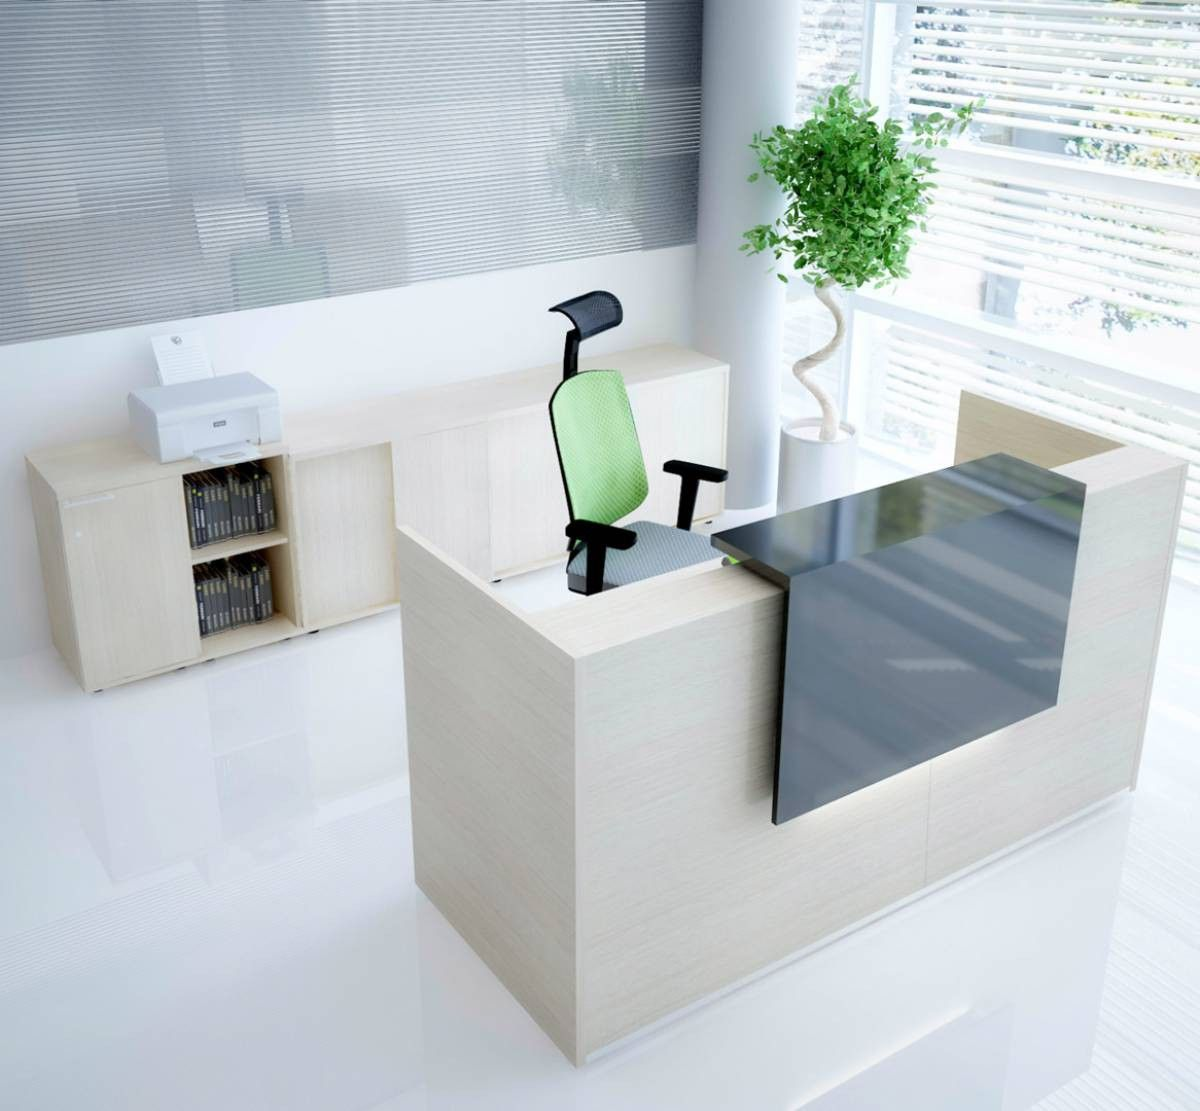 Home gt reception desks gt 8 curved maple glass top reception desk - Add Class And Elegance To Your Work Space With This Simple Yet Elegant Reception Desk Manufactured